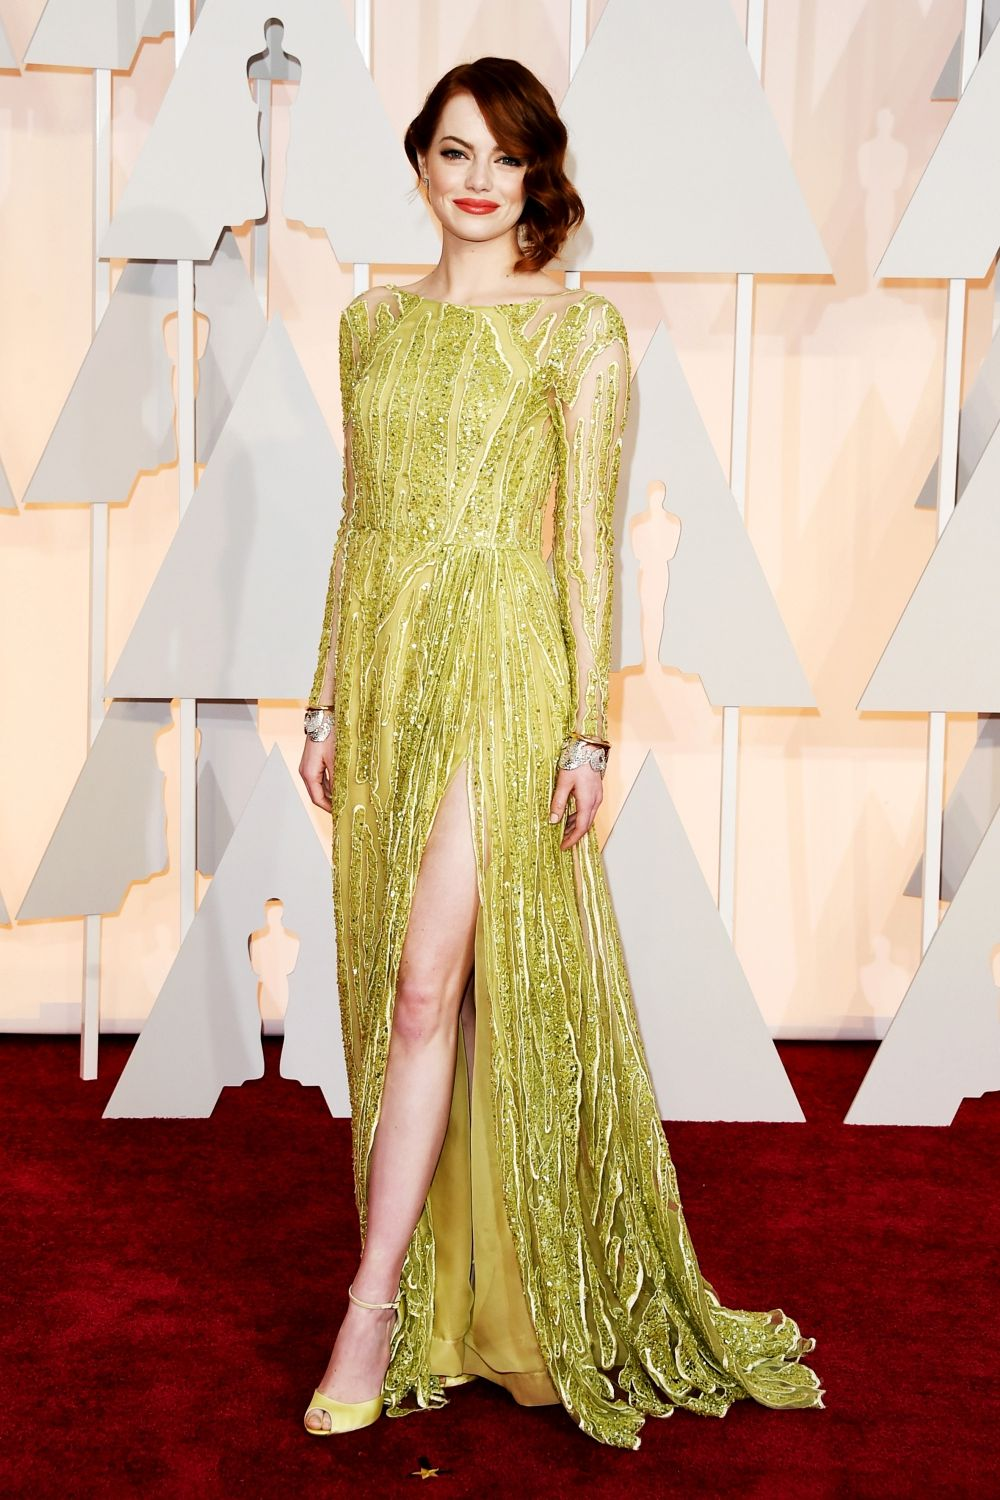 Emma Stone in Elie Saab Haute Couture at the 2015 Oscars